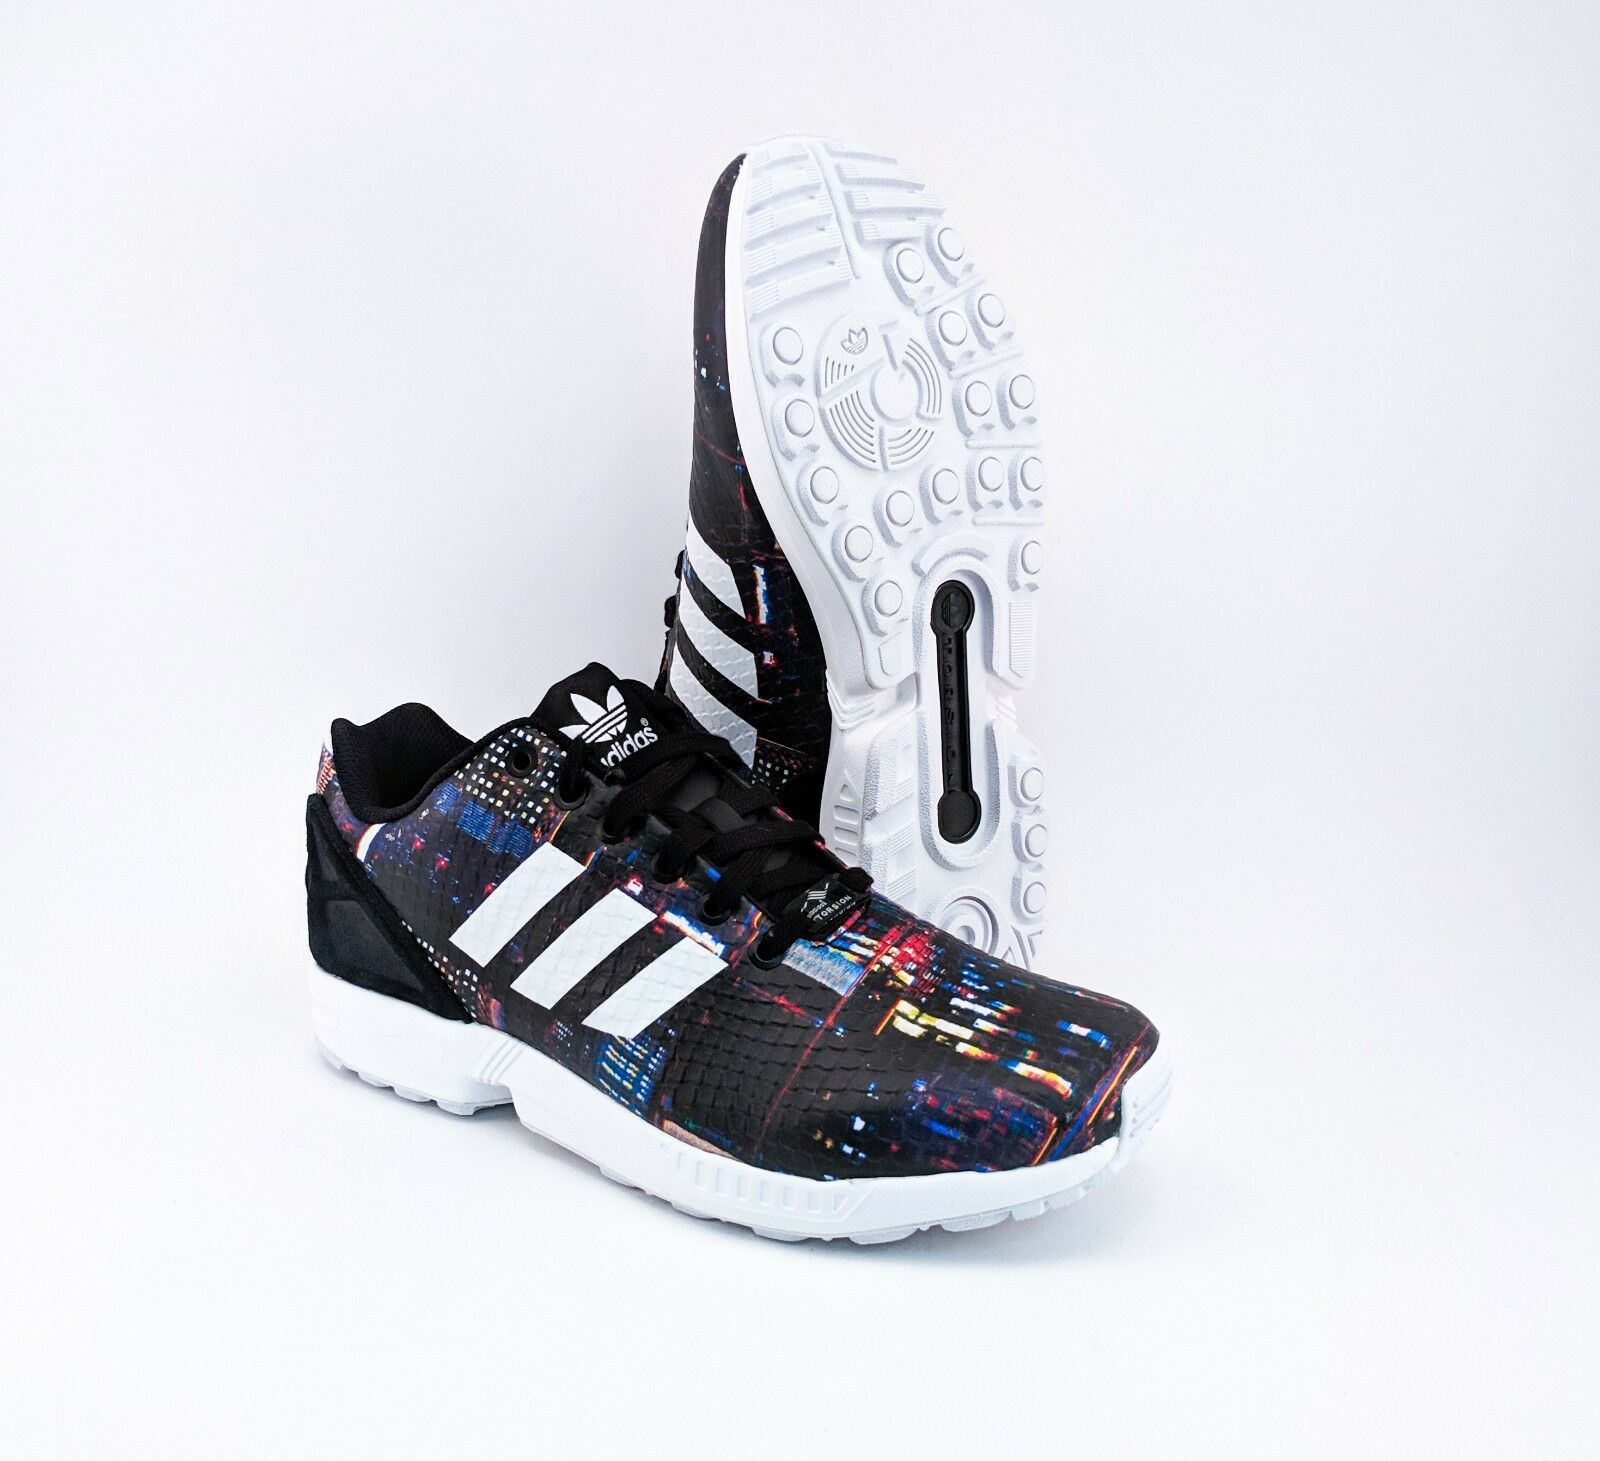 Adidas ZX Flux Tokyo Tokyo Tokyo Lights Running shoes Womens Size 10 B25834 - FREE PRIORITY 64dc19